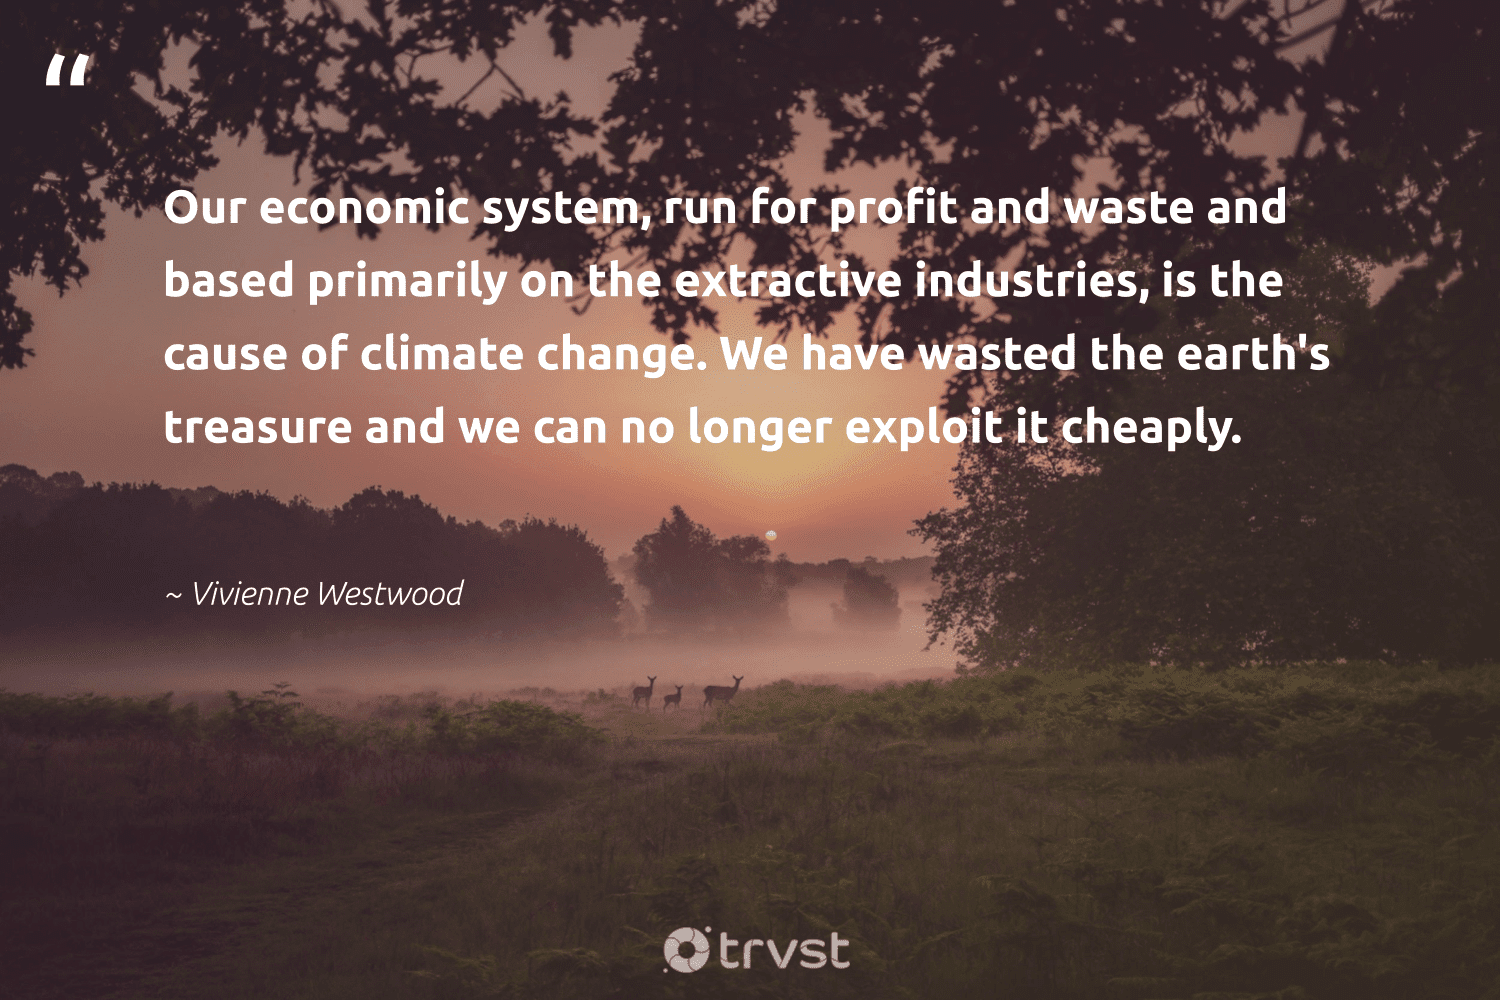 """""""Our economic system, run for profit and waste and based primarily on the extractive industries, is the cause of climate change. We have wasted the earth's treasure and we can no longer exploit it cheaply.""""  - Vivienne Westwood #trvst #quotes #climatechange #waste #climate #cause #climateaction #cop21 #climatechangeisreal #ecoconscious #bethechange #carbonemissions"""